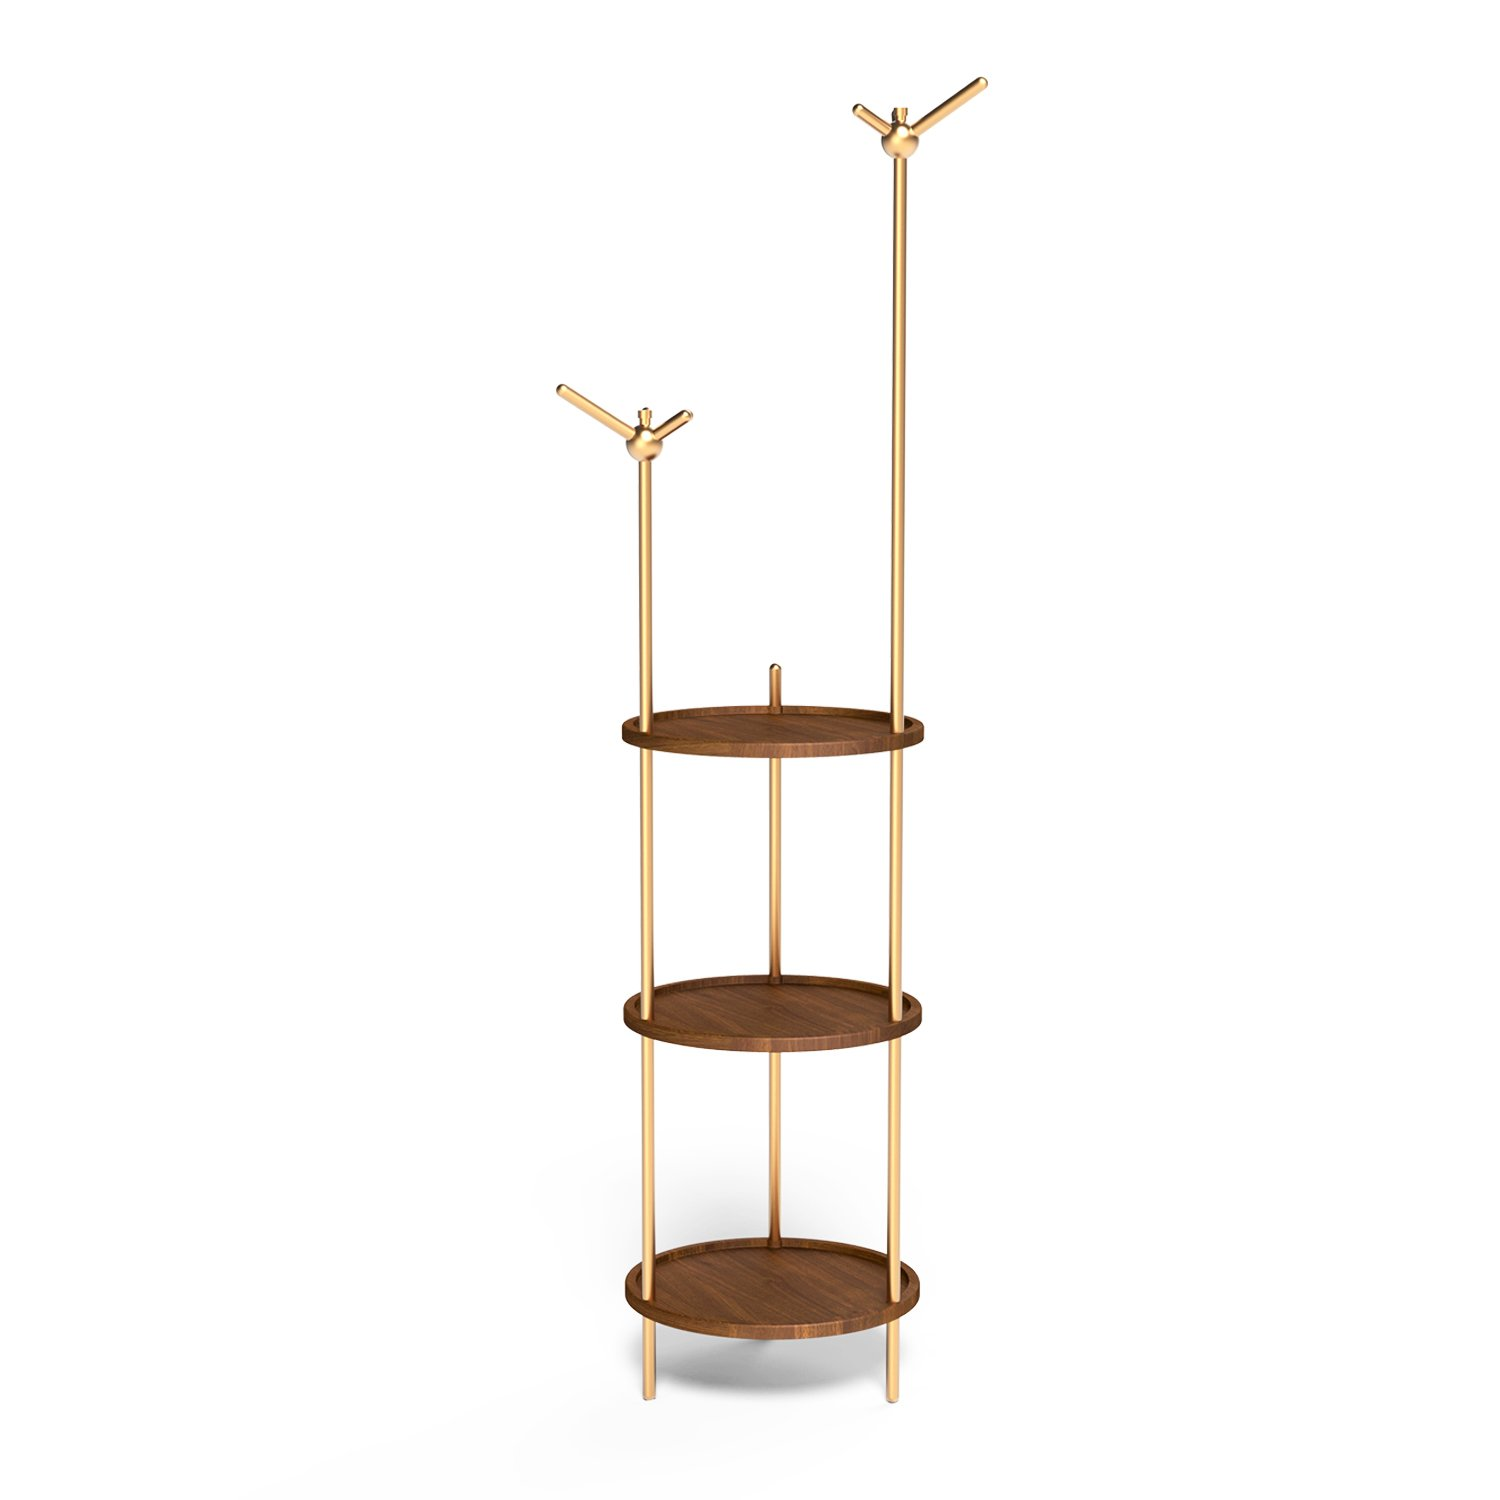 Black Walnut Multi-Purpose Coat Rack by Lagom Är Bäst, Designer Hall Stand, Three-layer Storage Boards, Smart Connection, Easy Assembling and Dissembling, Flat Package